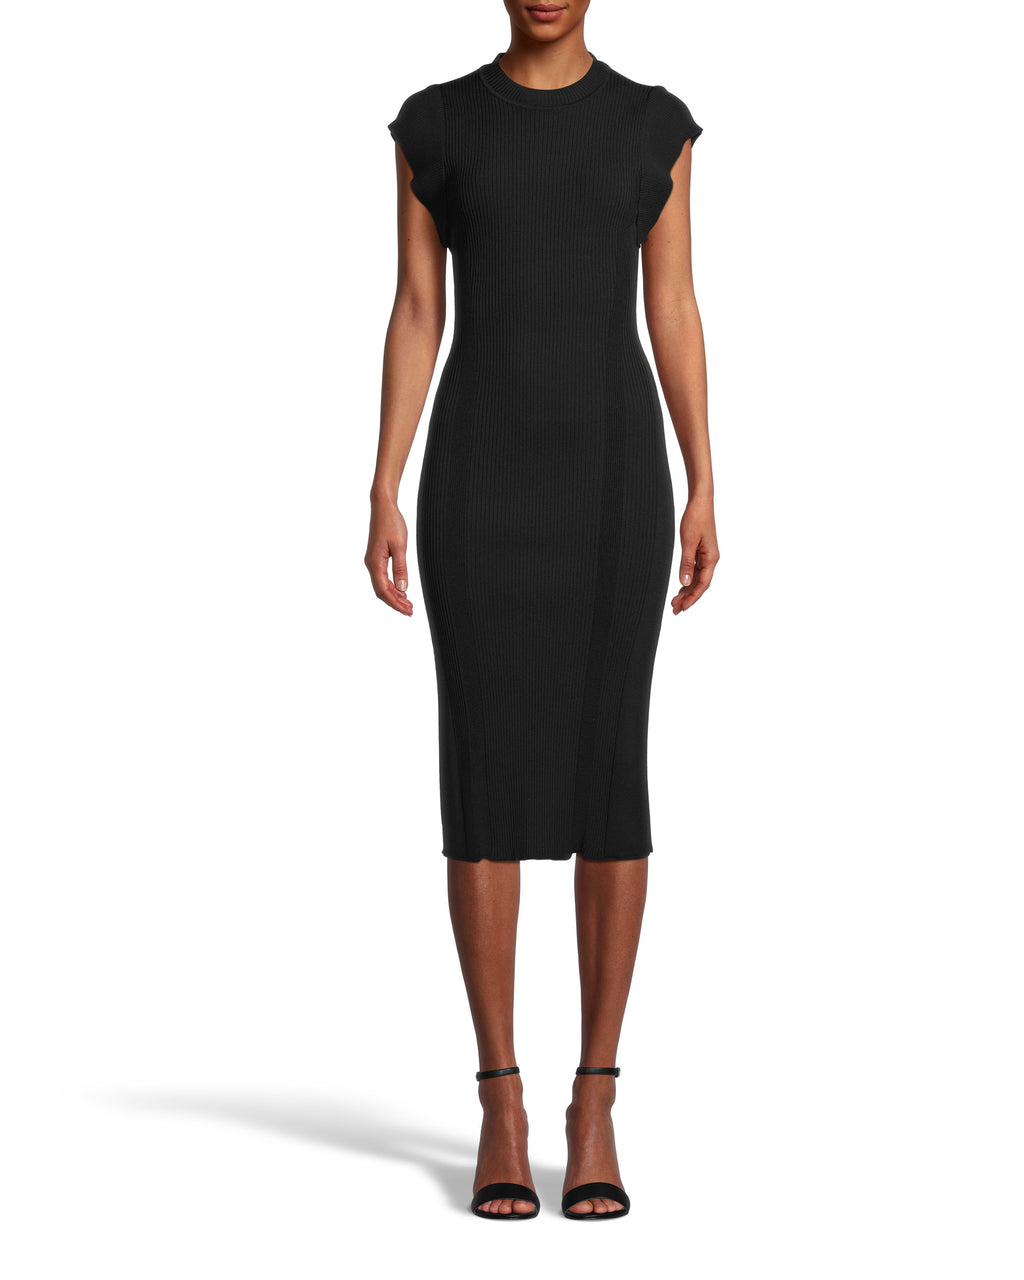 CD18434 - MOCK NECK OPEN BACK SHEATH DRESS - dresses - midi - LBD season. This modern style is designed in soft and flattering ribbed fabric. The understated mock neck leads into flared shoulders for added detail. This pull on piece features a subtle yet sexy open back. Add 1 line break Stylist tip: Pair with dangling earrings and strappy heels.